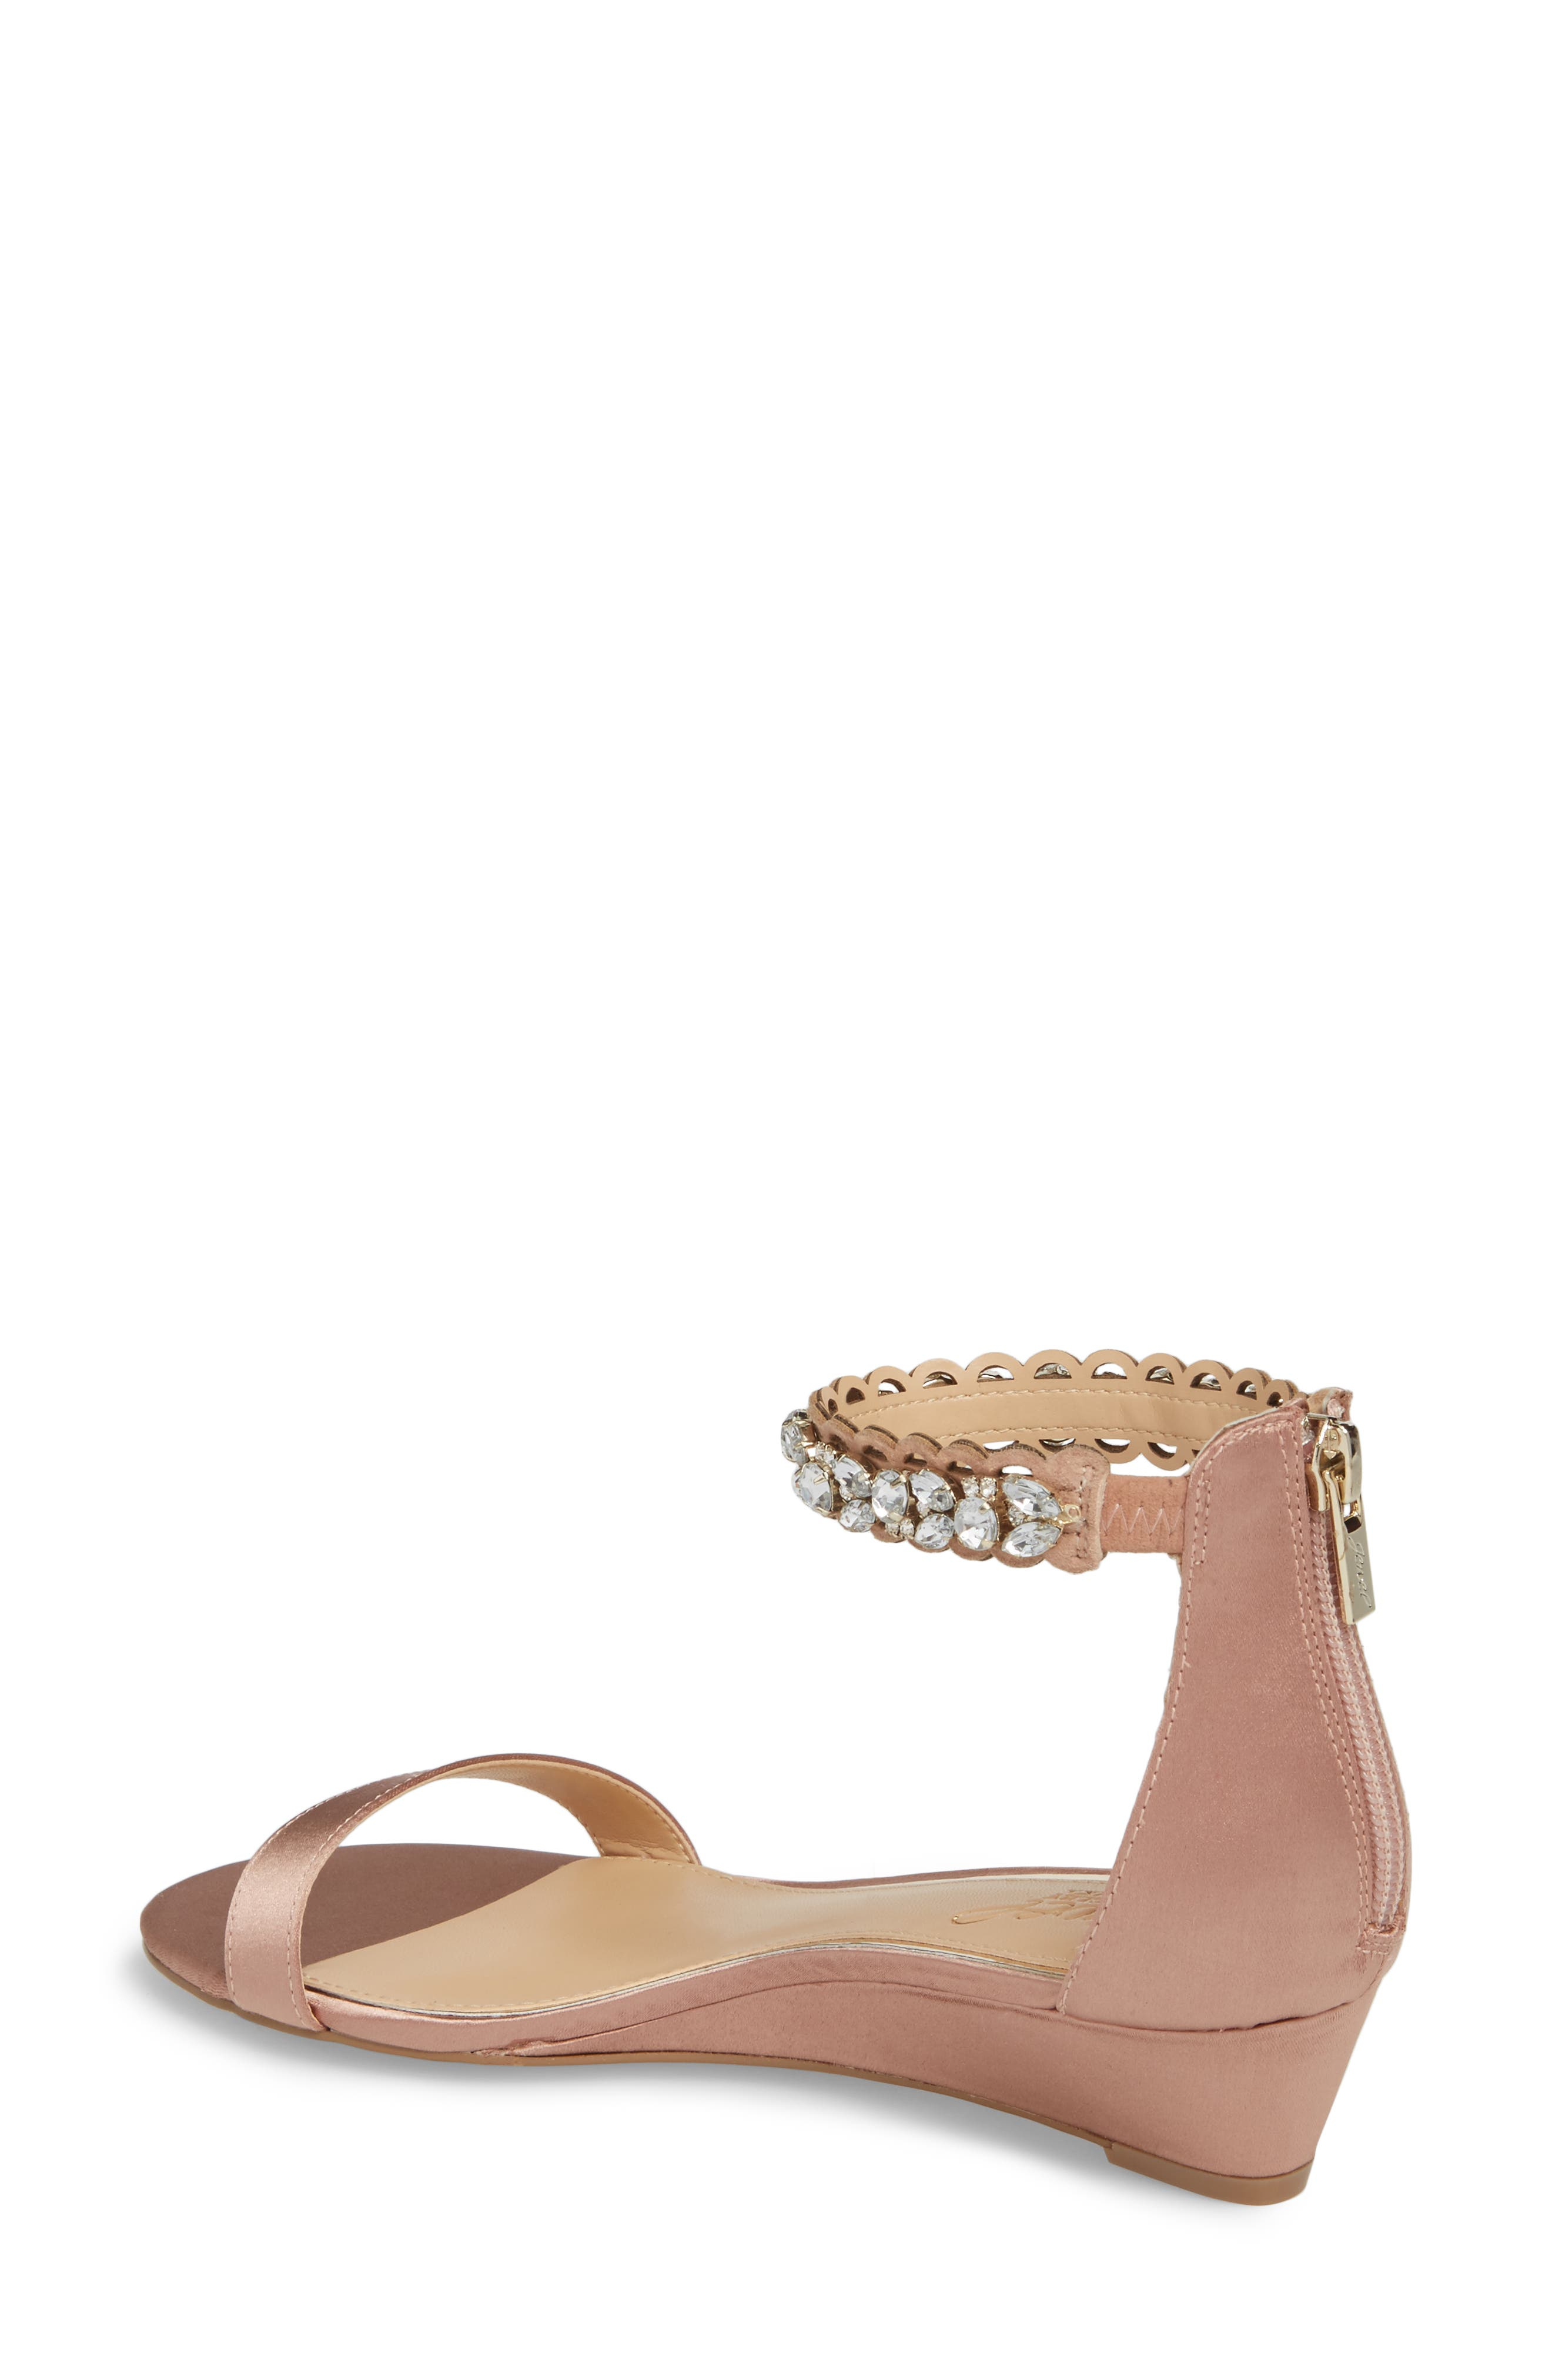 Ginger Wedge Sandal,                             Alternate thumbnail 2, color,                             Dark Blush